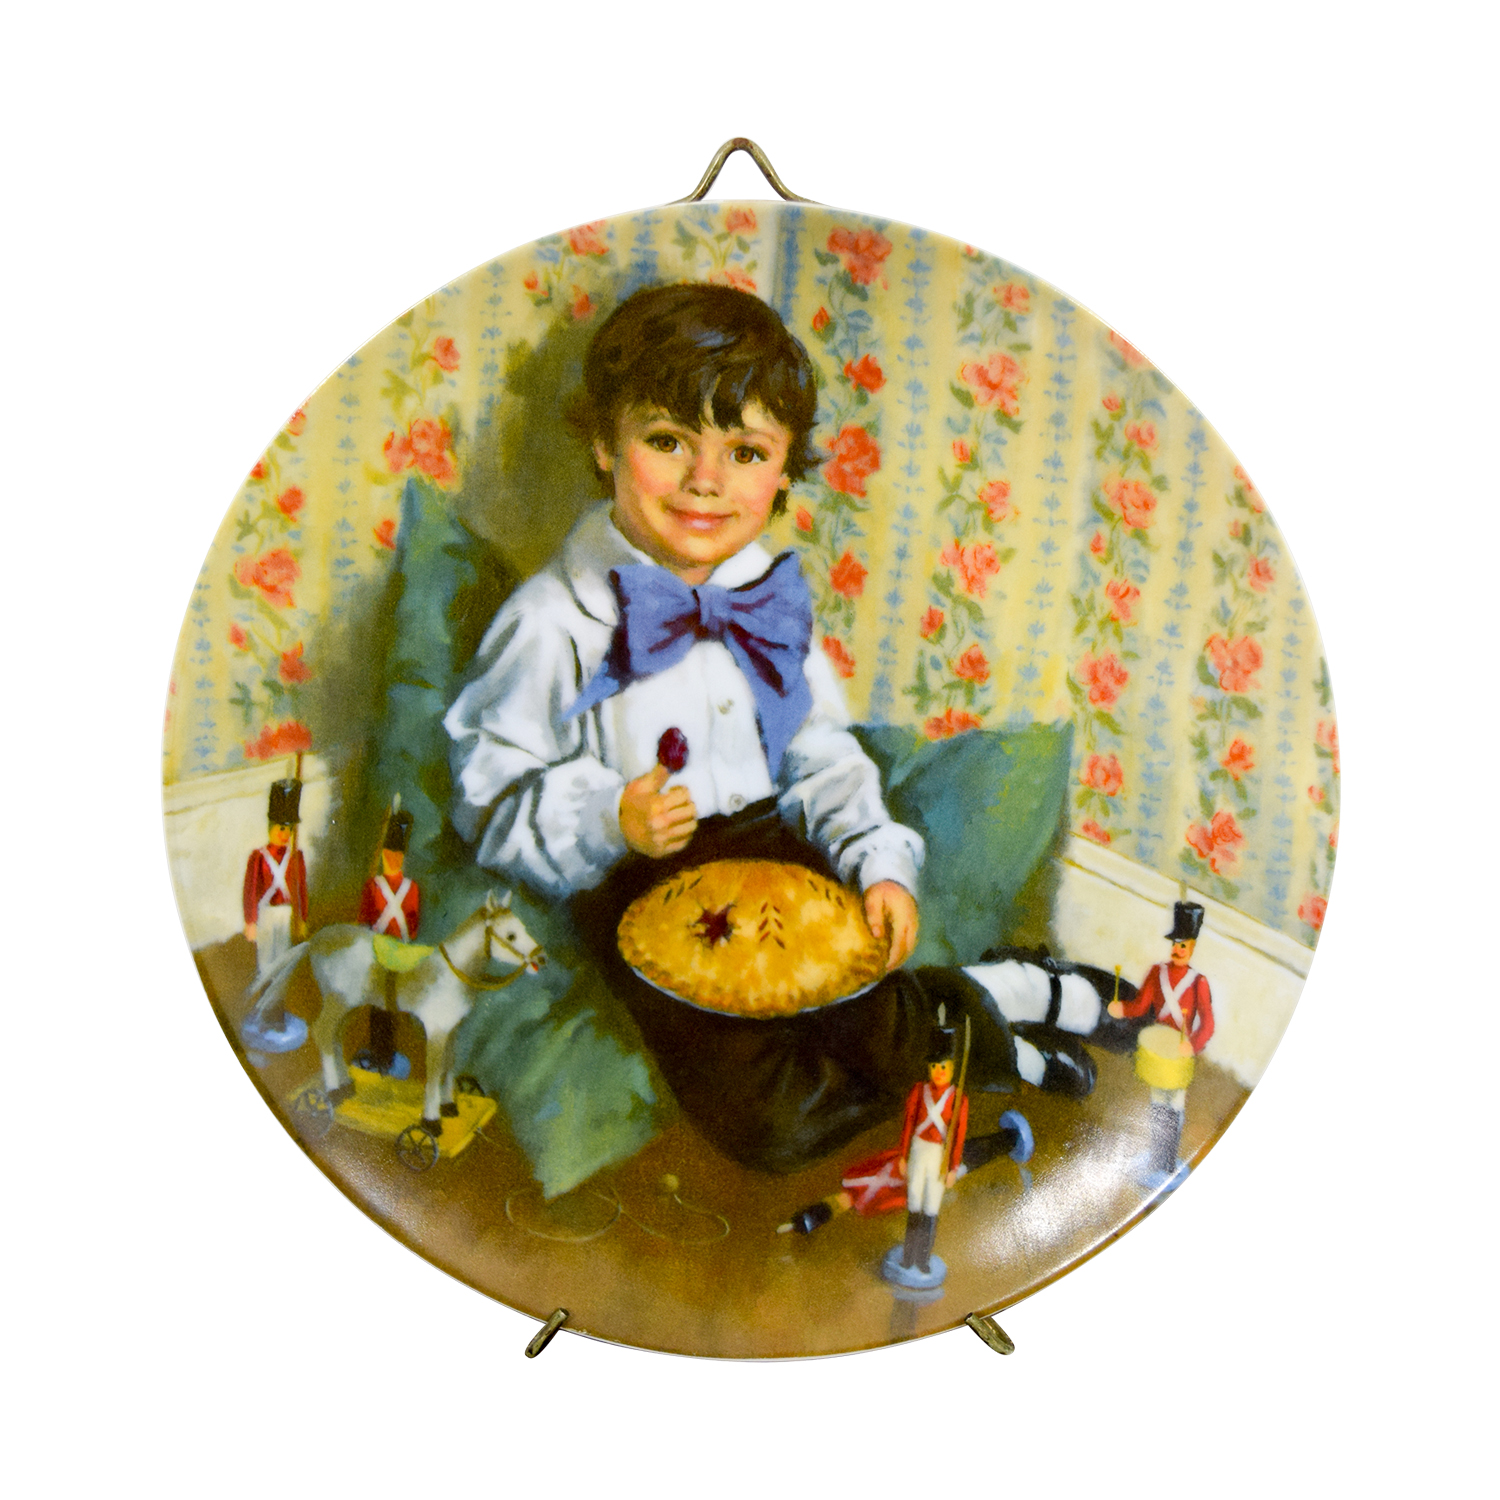 Edward M. Knowles Norman Rockwell Little Jack Horner Plate Edward M. Knowles